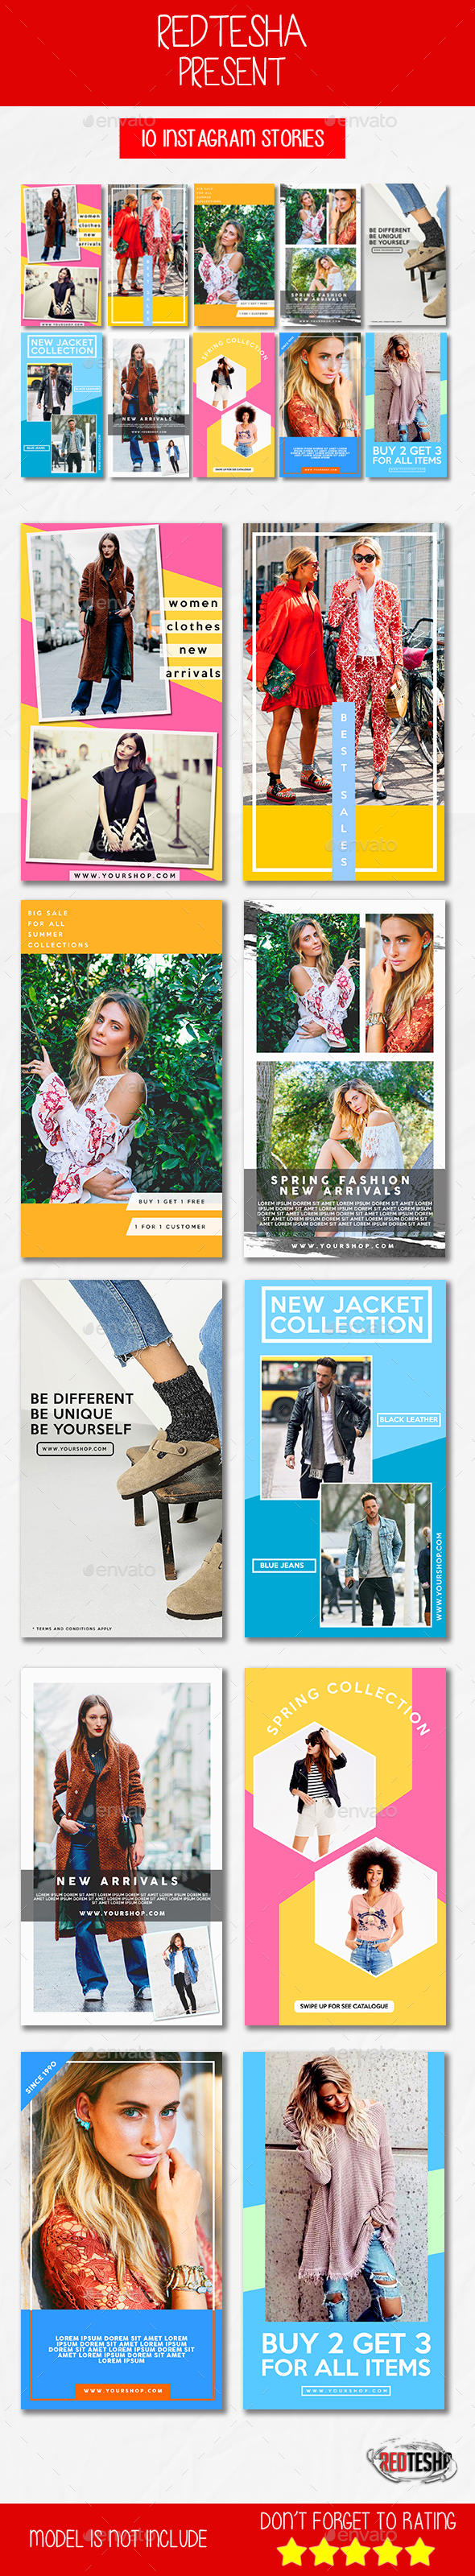 10 Instagram Stories Ads - Banners & Ads Web Elements